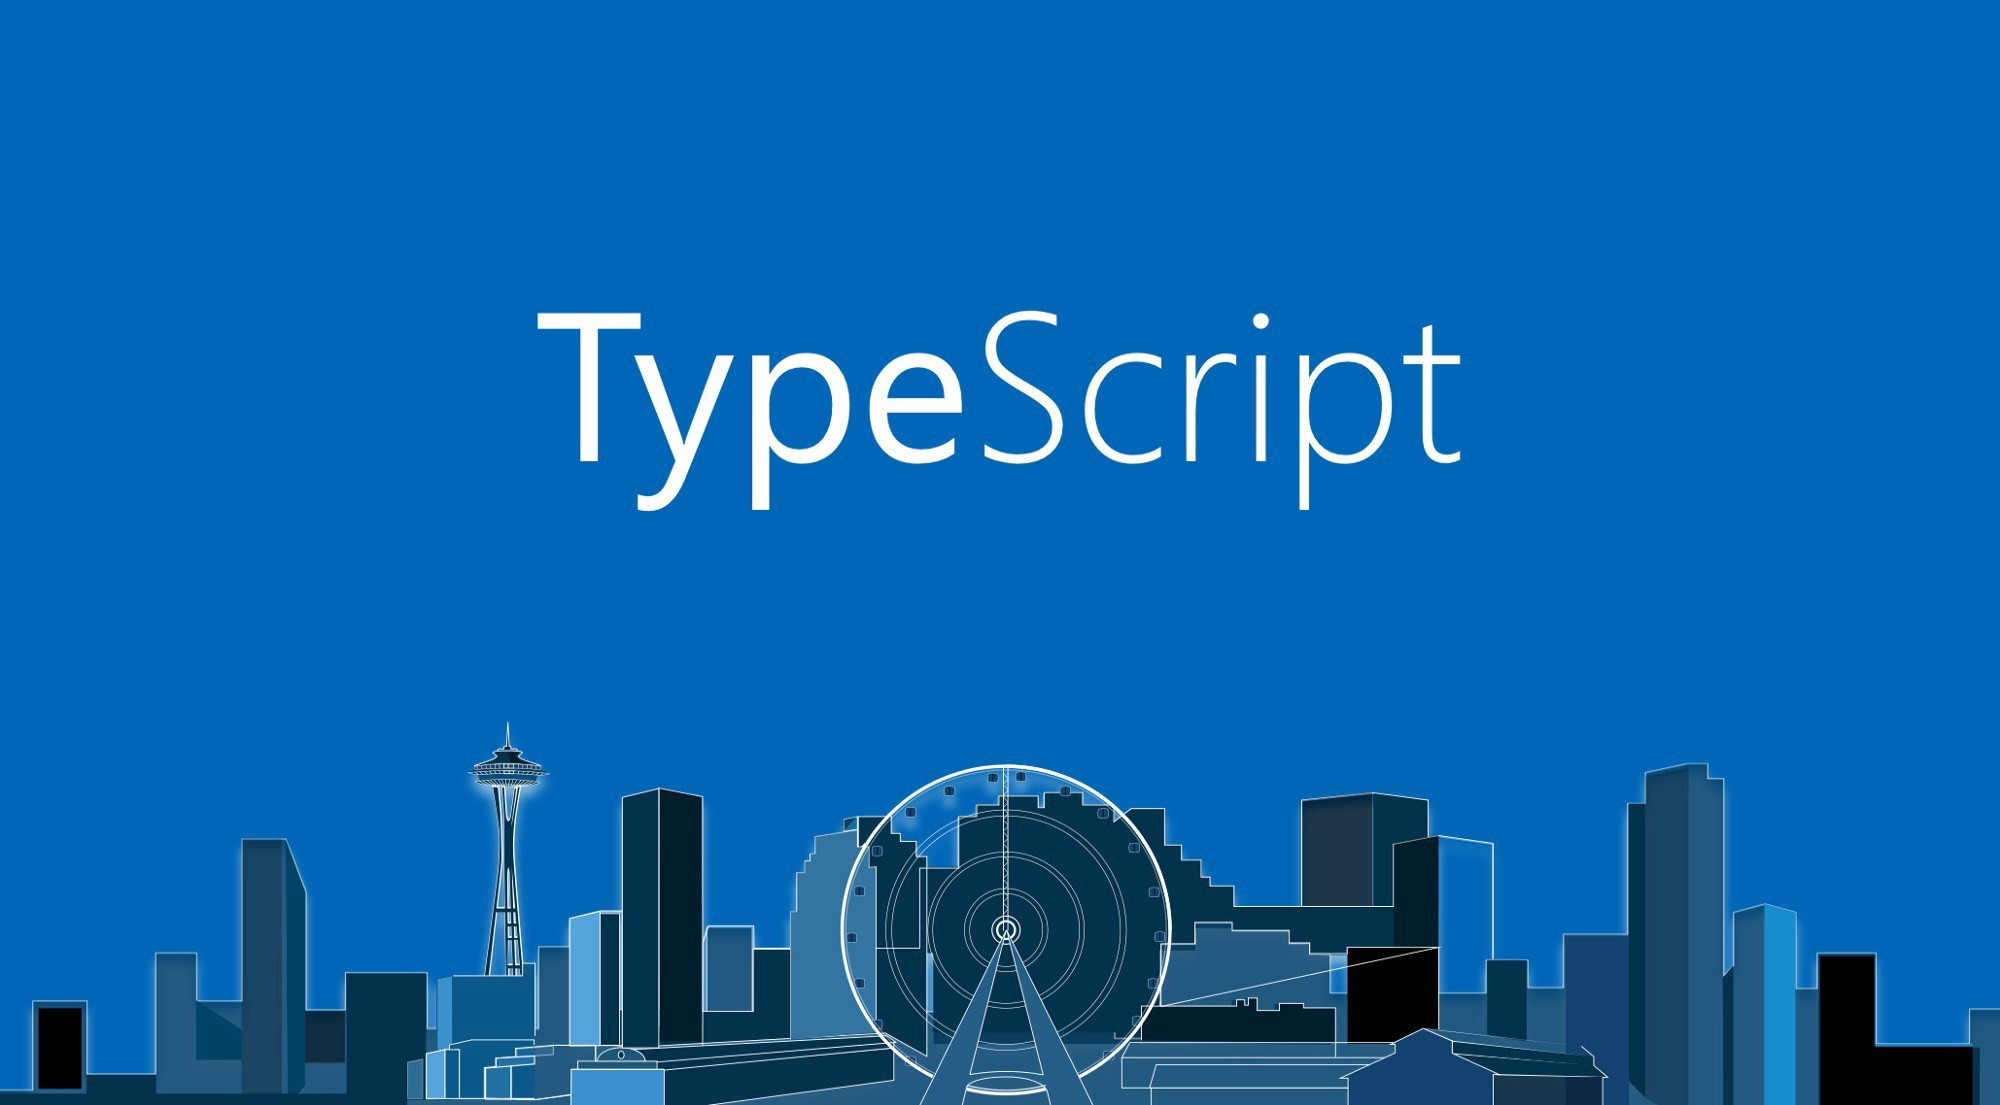 Typescript is actually amazing.